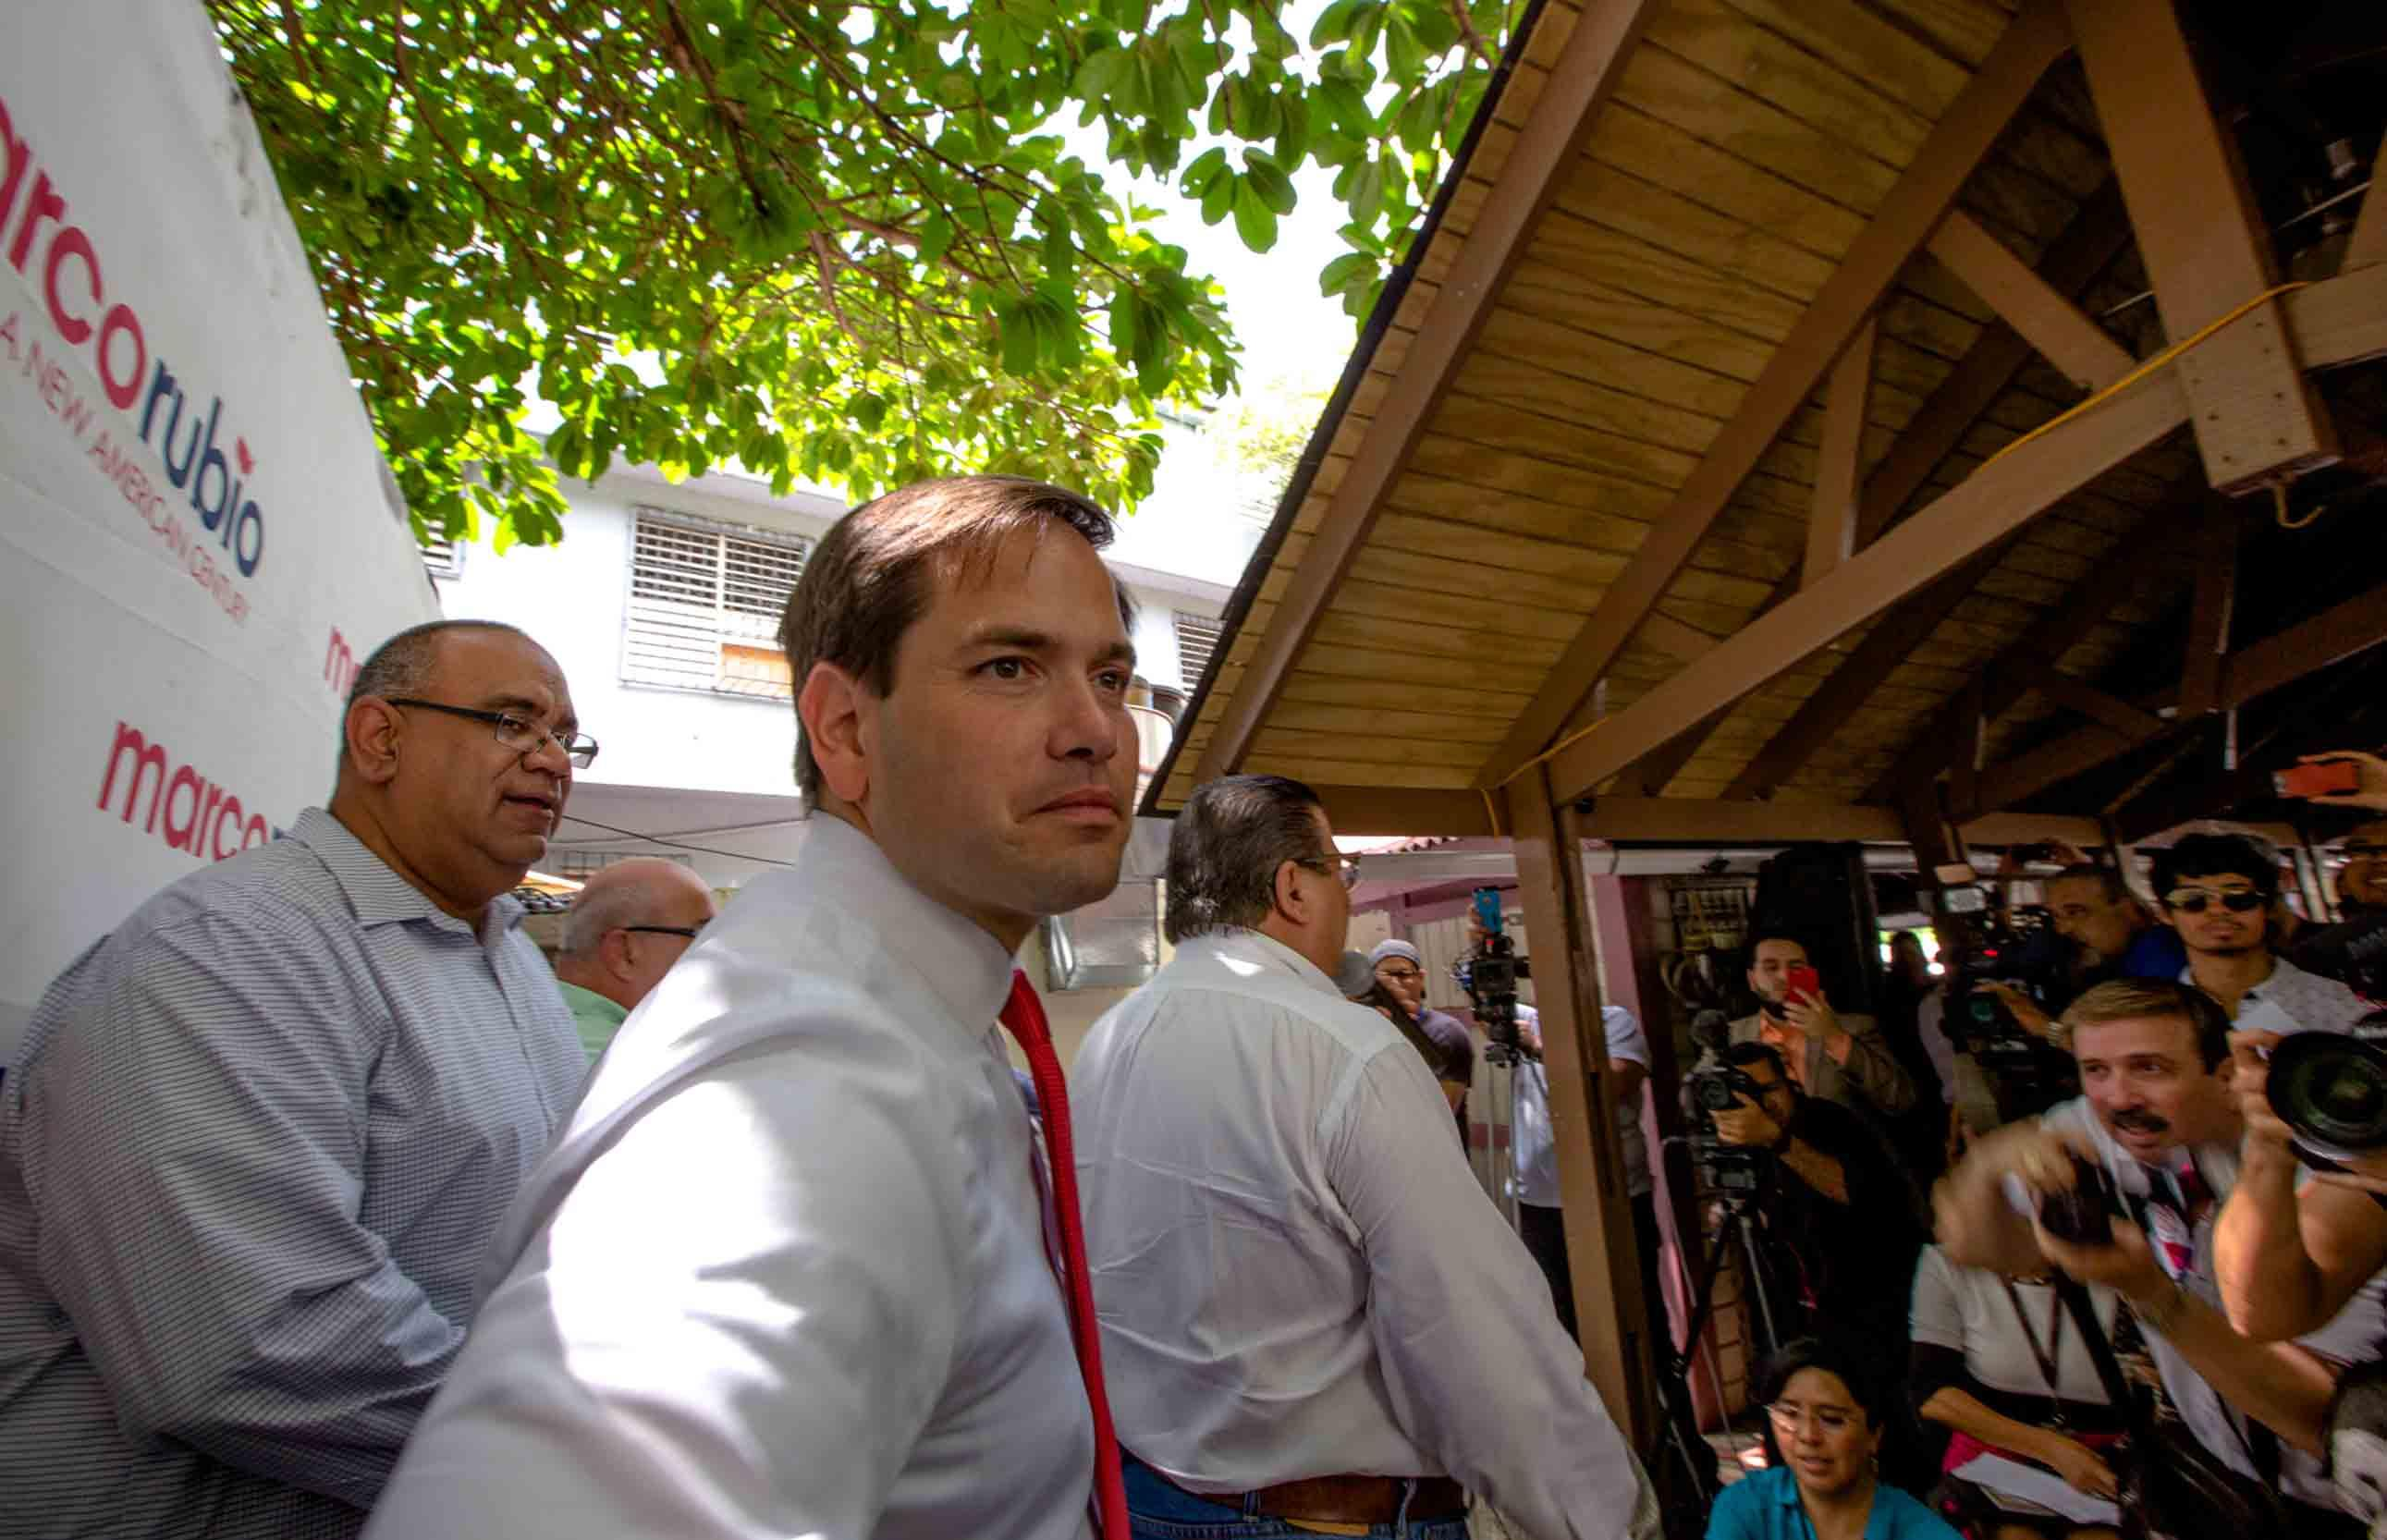 5 Ways Your Money Could Be Affected By a Marco Rubio Presidency